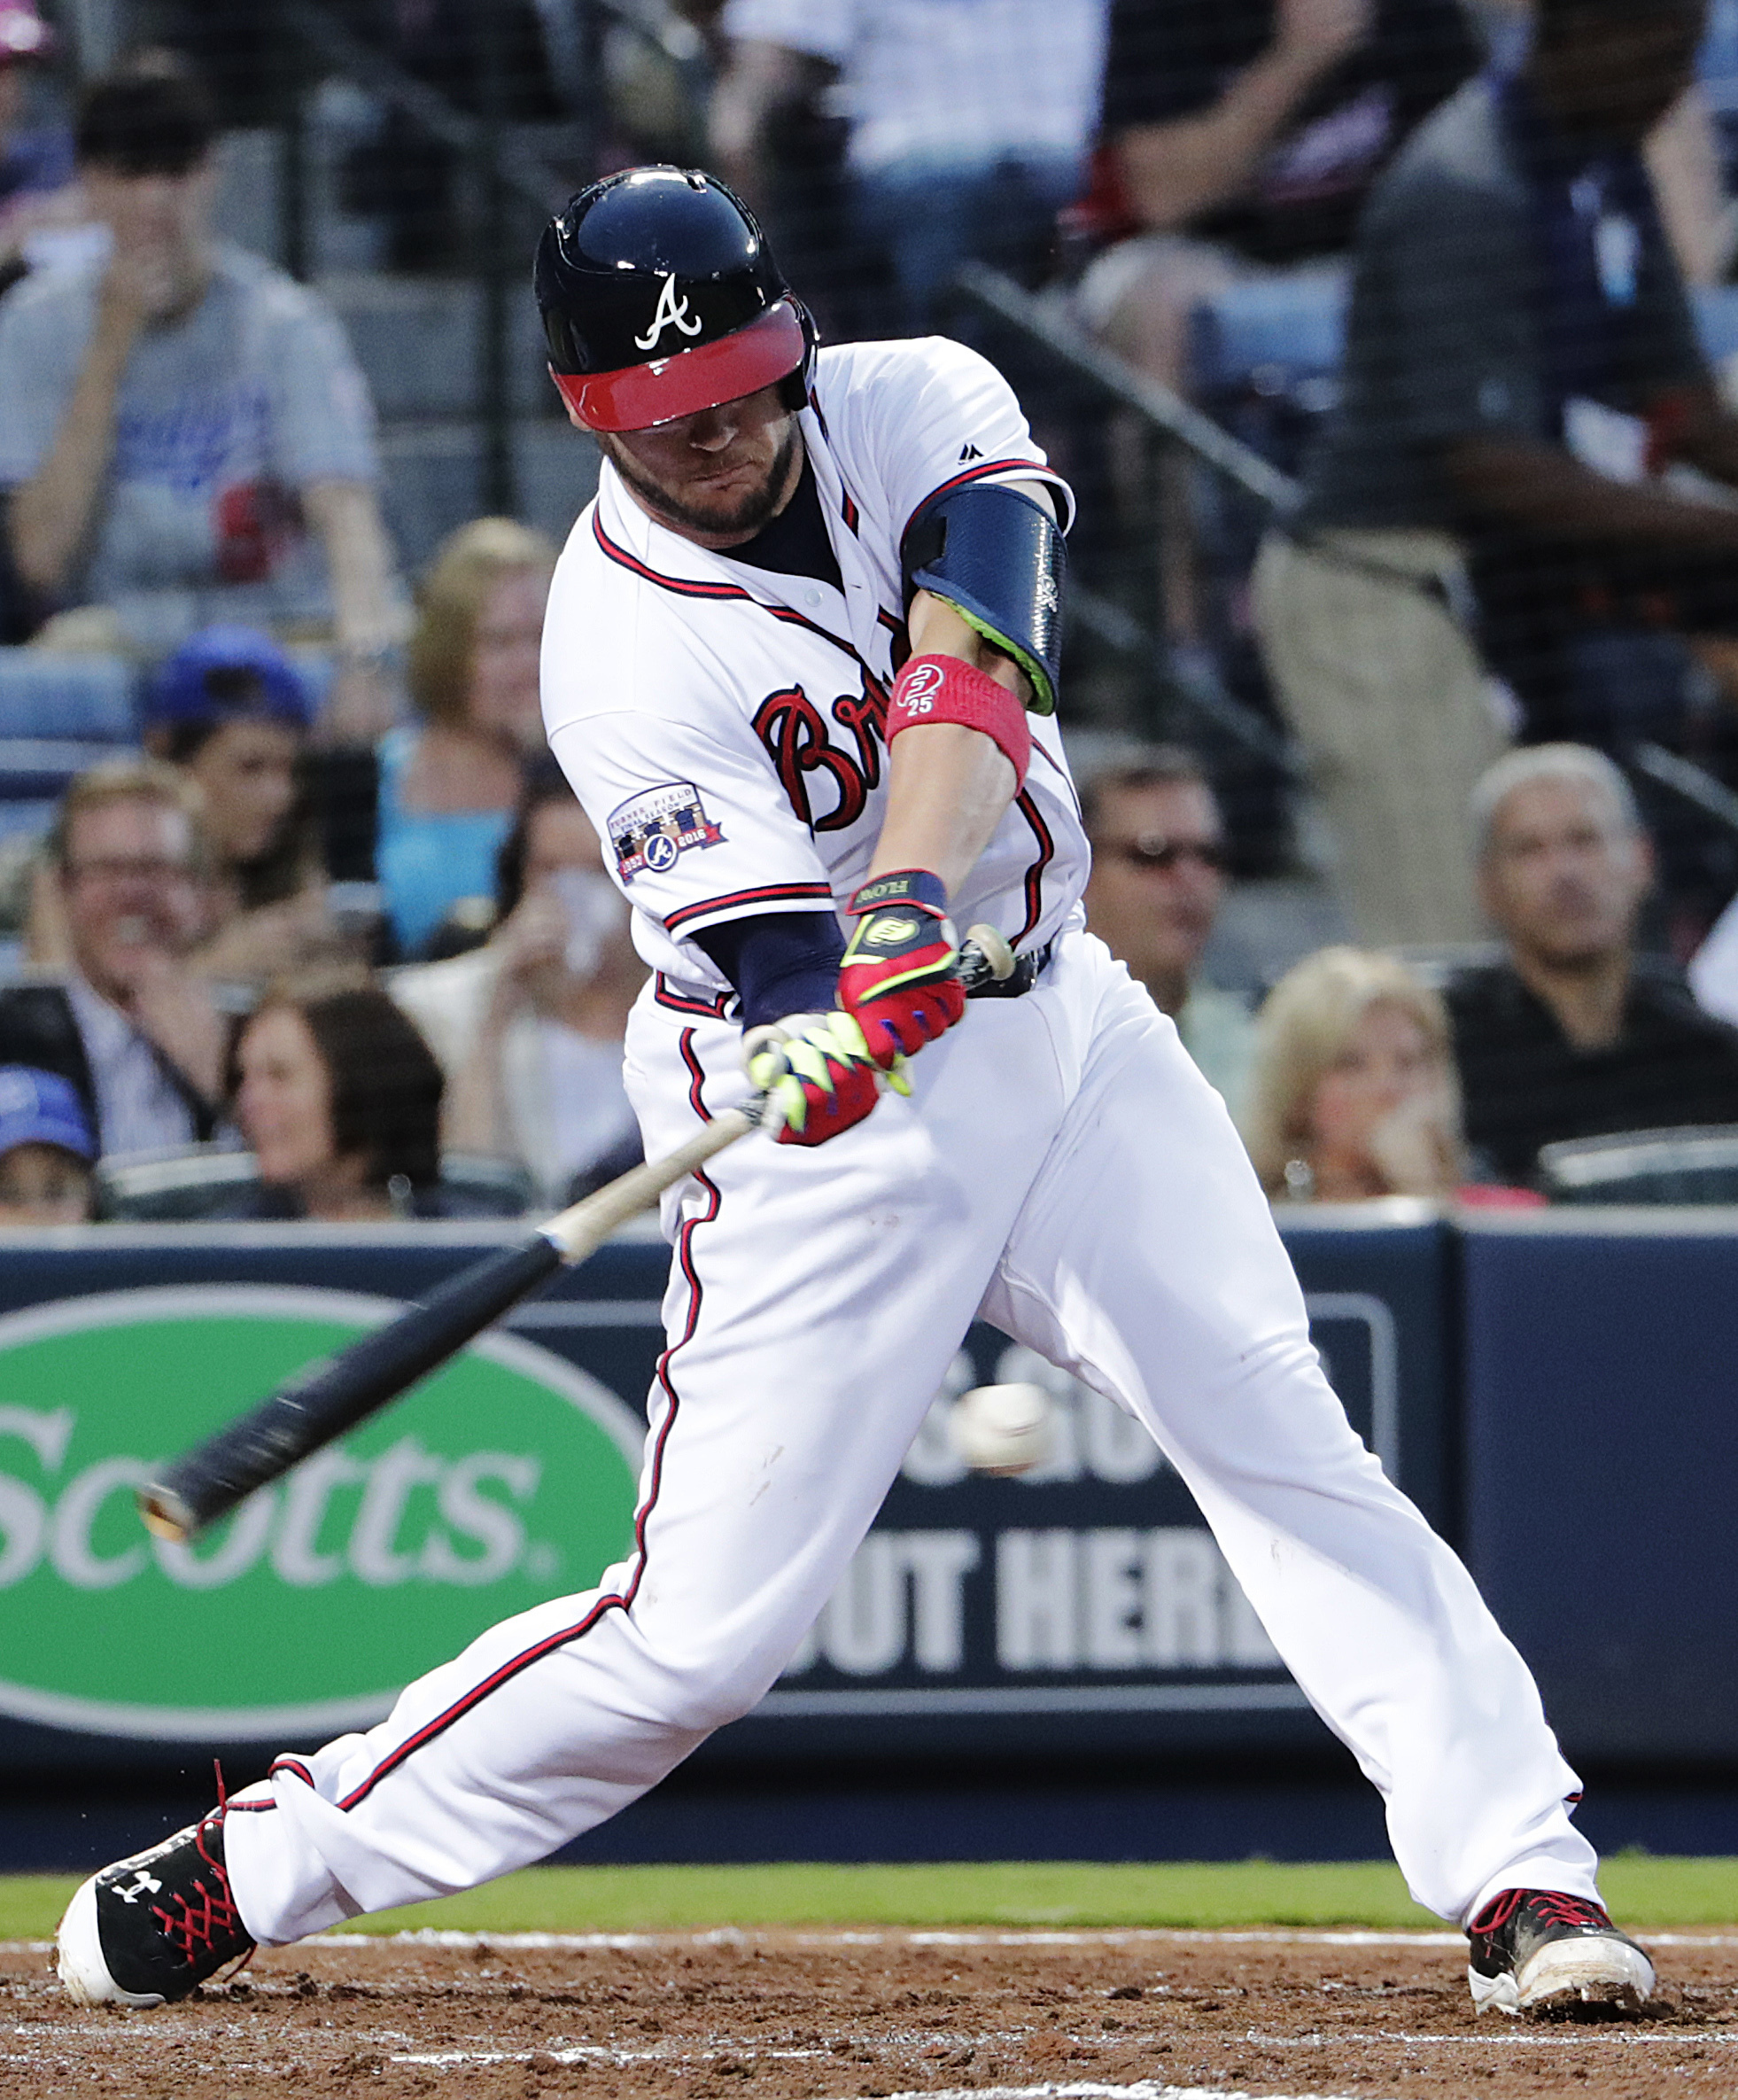 Atlanta Braves' Tyler Flowers hits a single to score Adonis Garcia during the third inning of a baseball game against the Los Angeles Dodgers Tuesday, April 19, 2016, in Atlanta. (AP Photo/David Goldman)